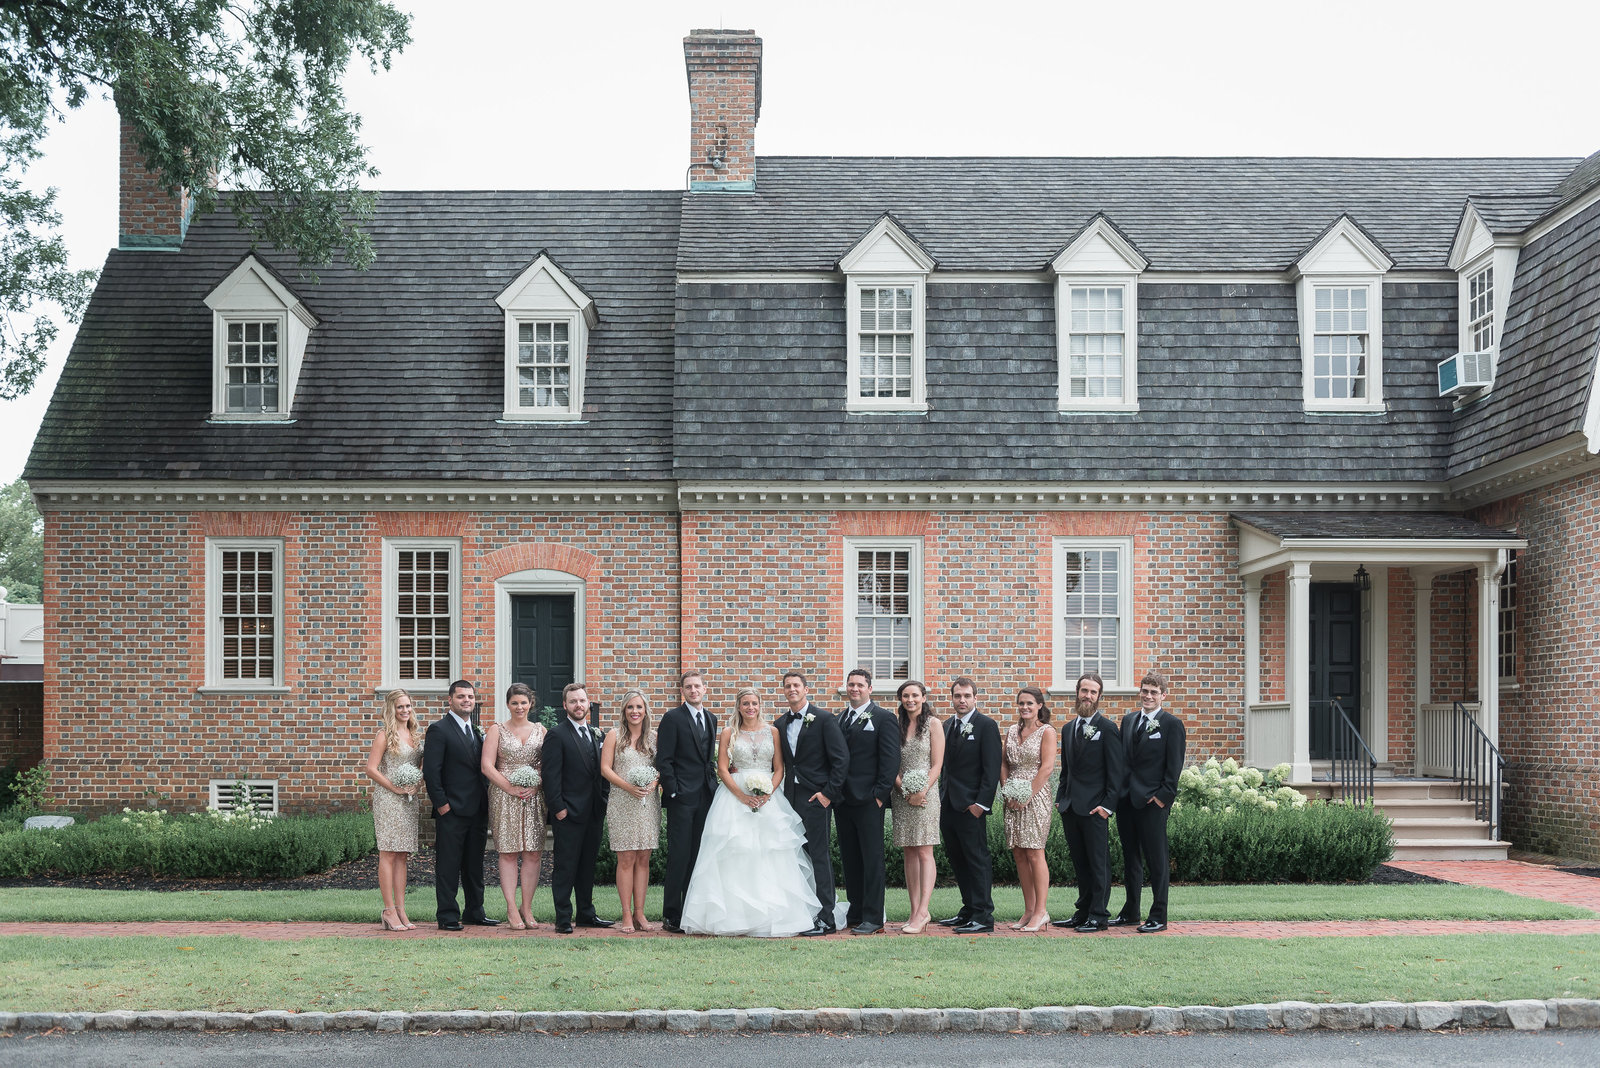 Byra-and-Nick-Willow-Oaks-Country-Club-Wedding-Melissa-Desjardins-Photography-6